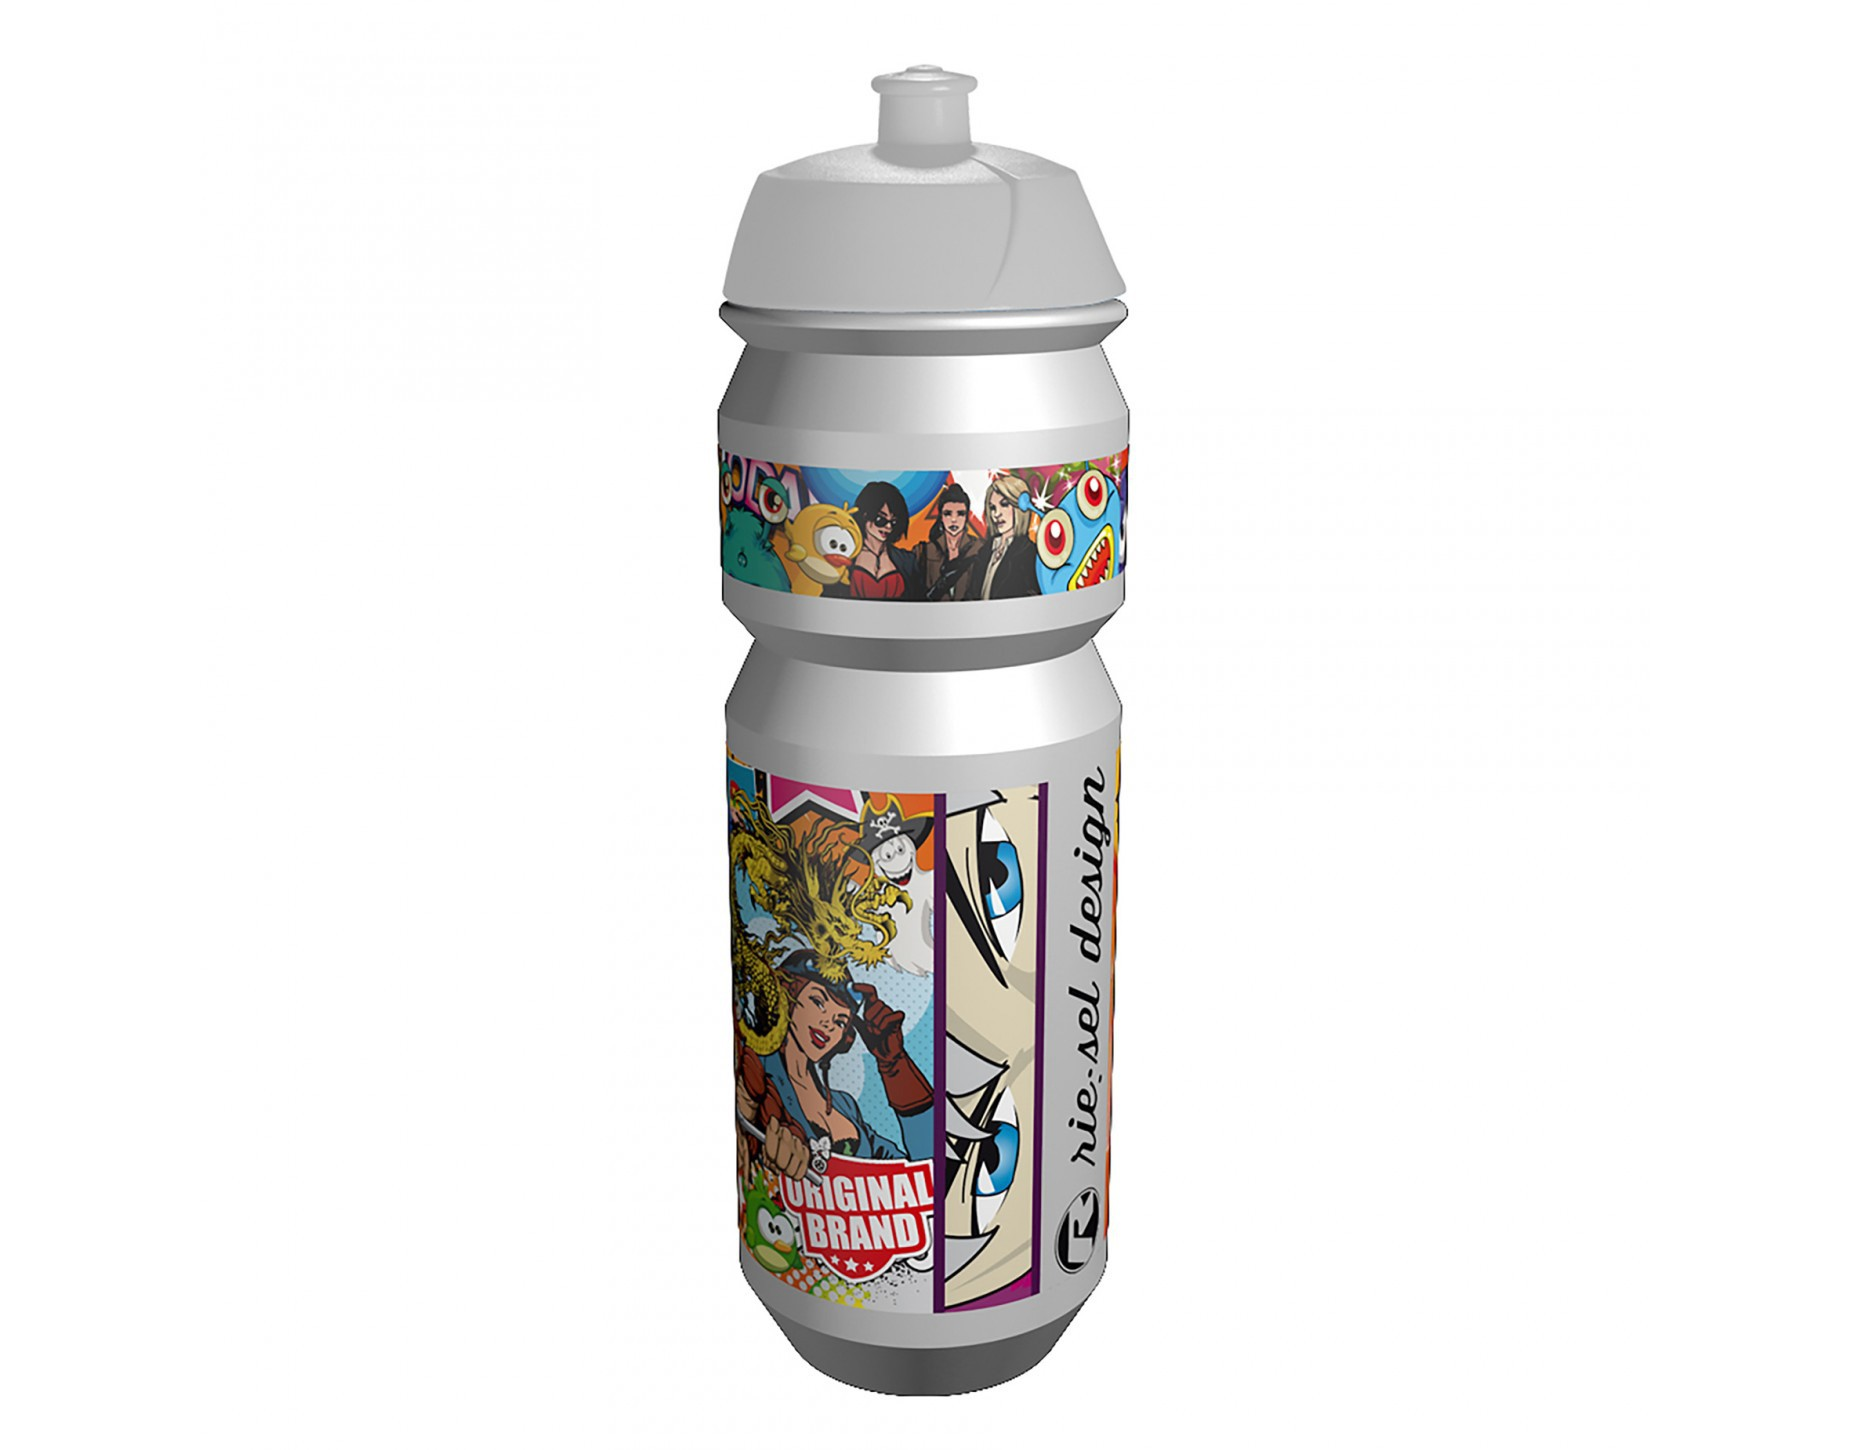 Rie sel design drinks bottle 750 ml everything you need for Decor drink bottle